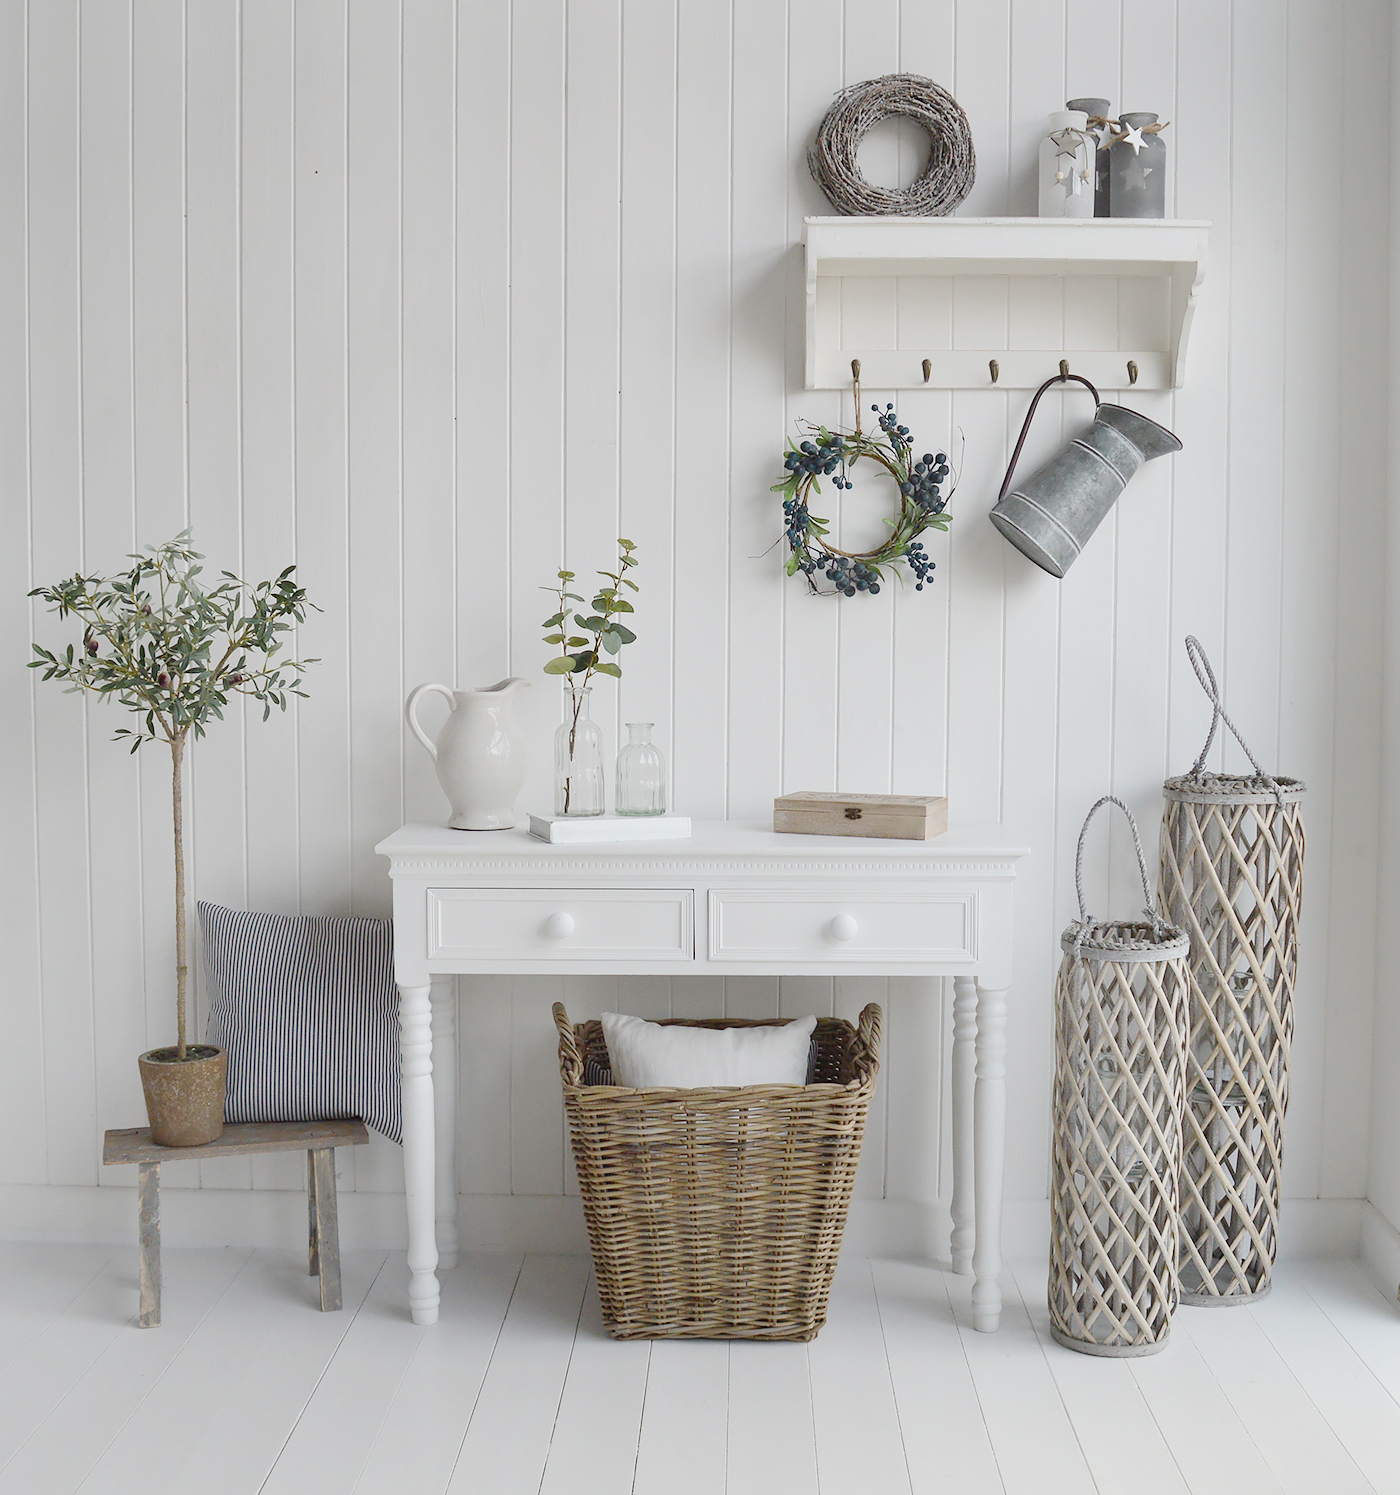 New England style white furniture and home decor for country, city and coastal homes and interiors